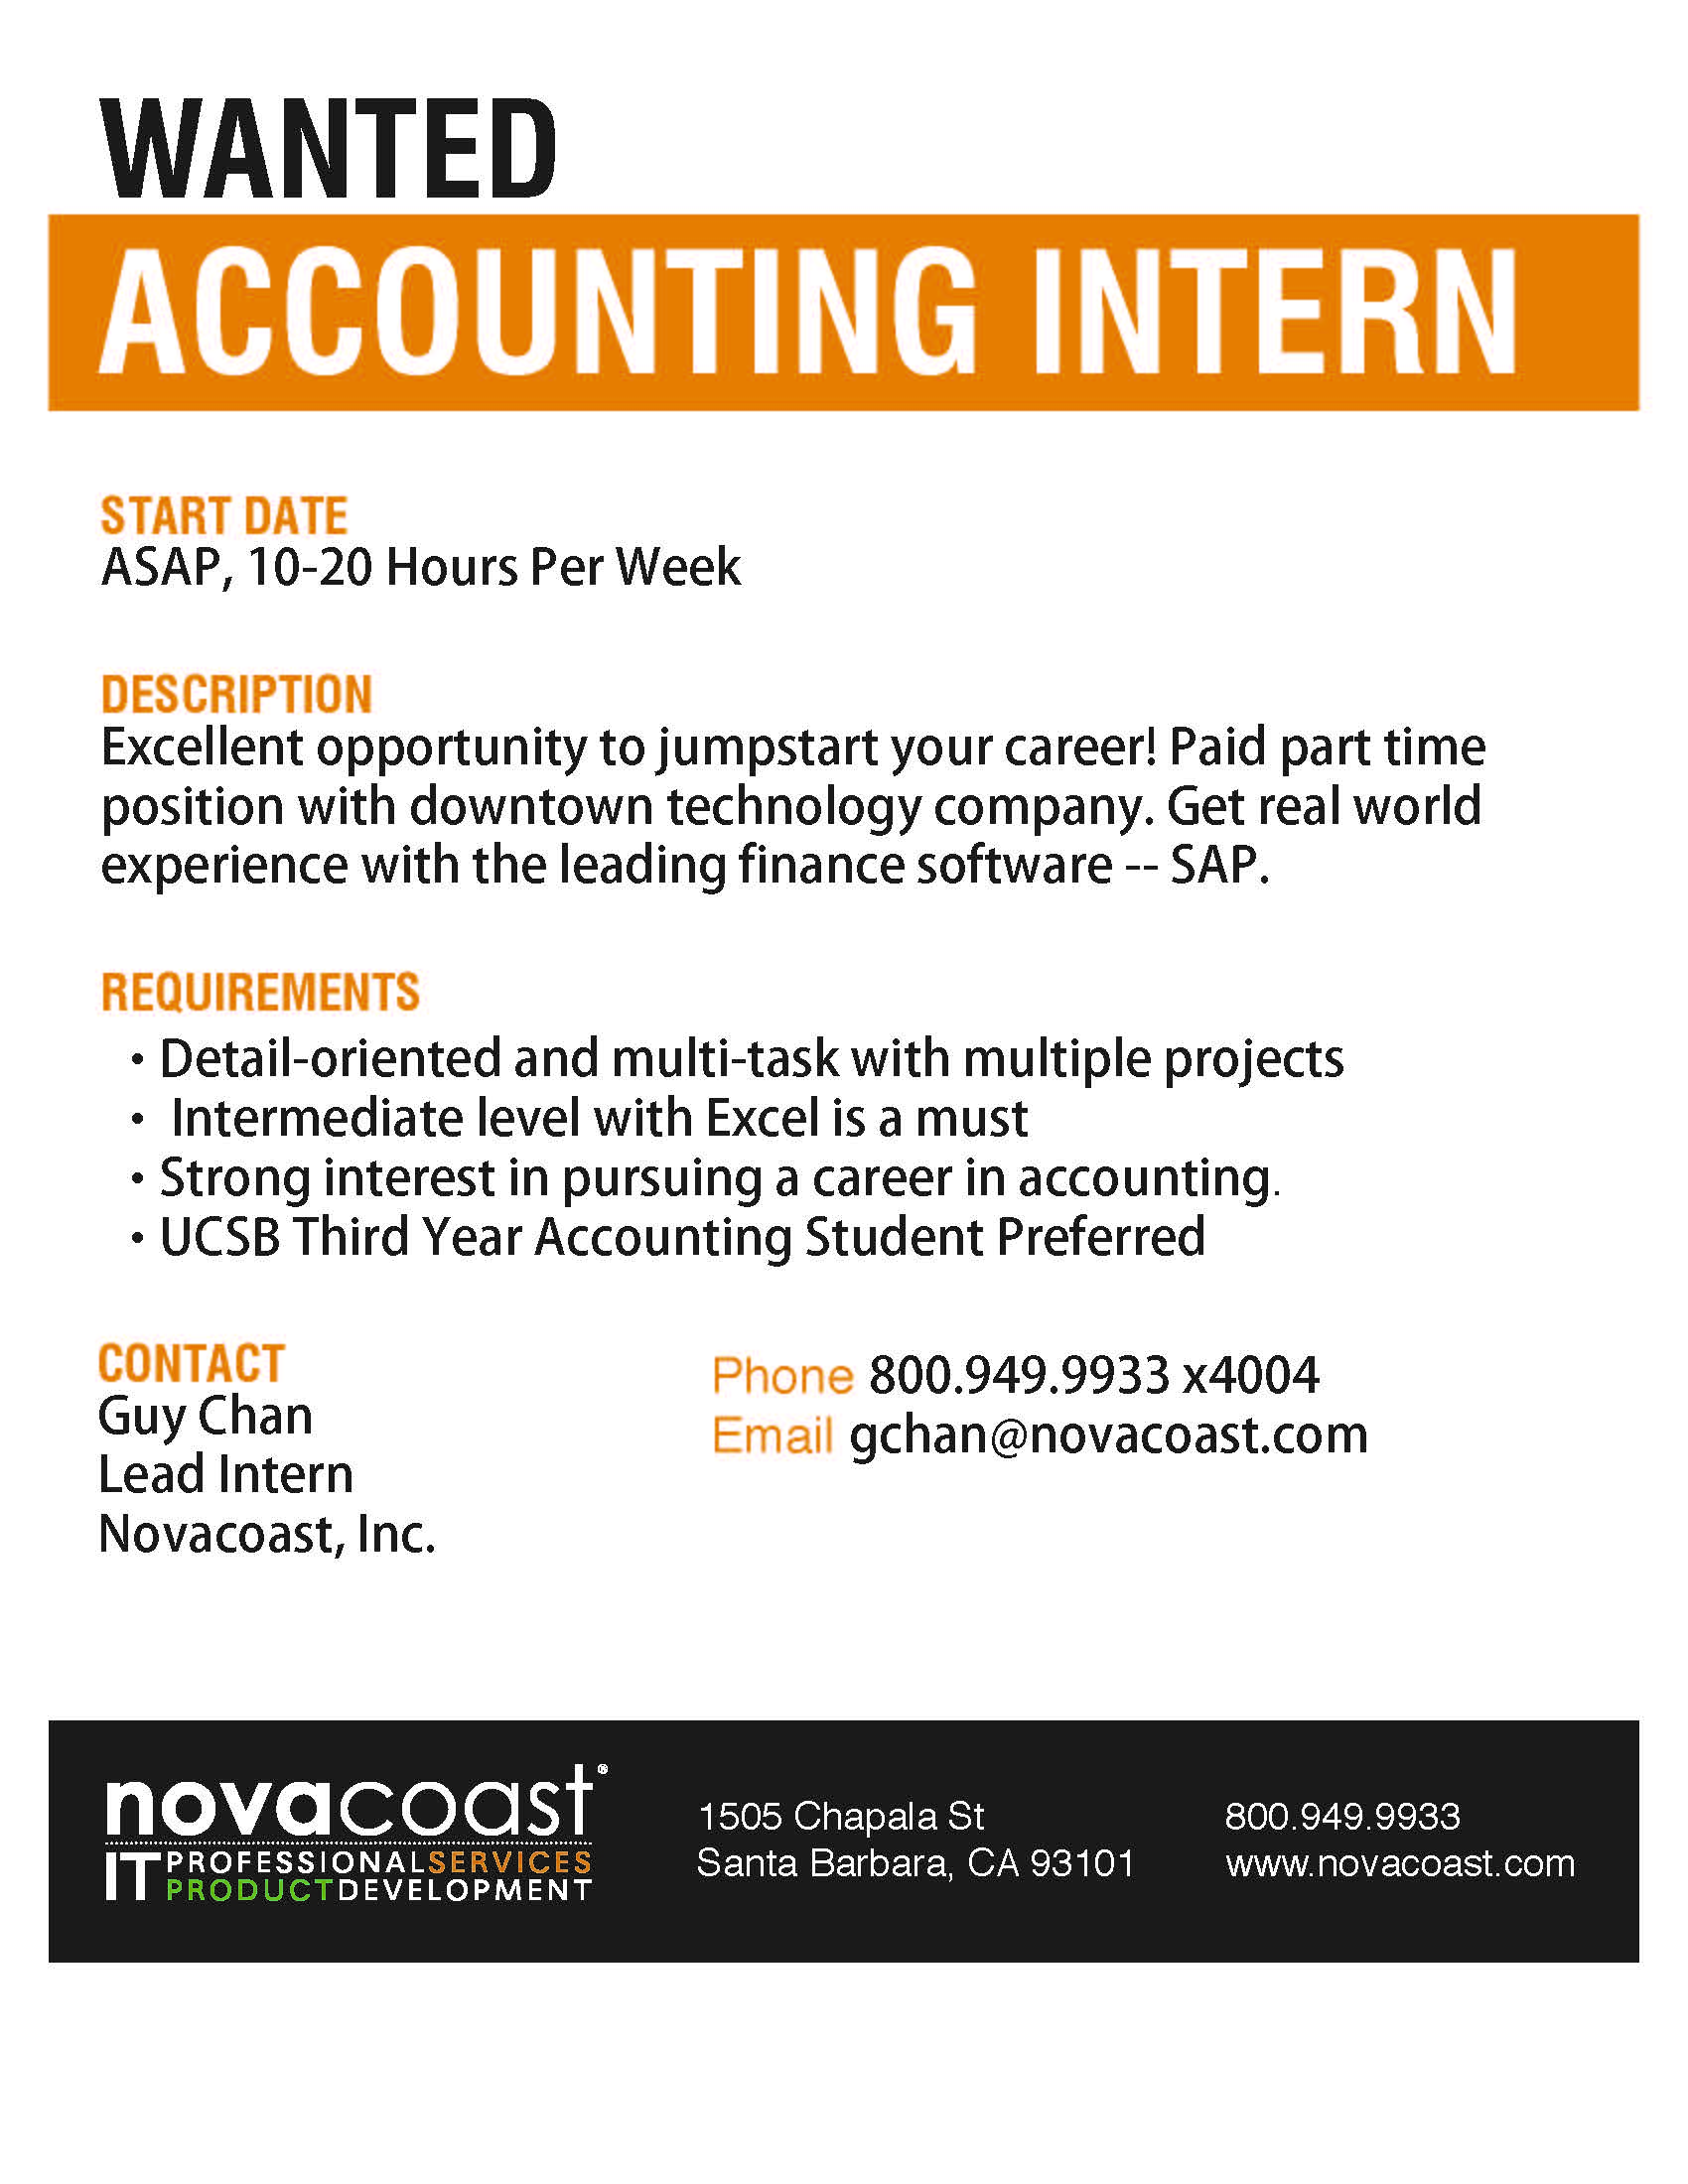 Novacoast Accounting Internship Flier   Fall 2013 1  Accounting Intern Resume